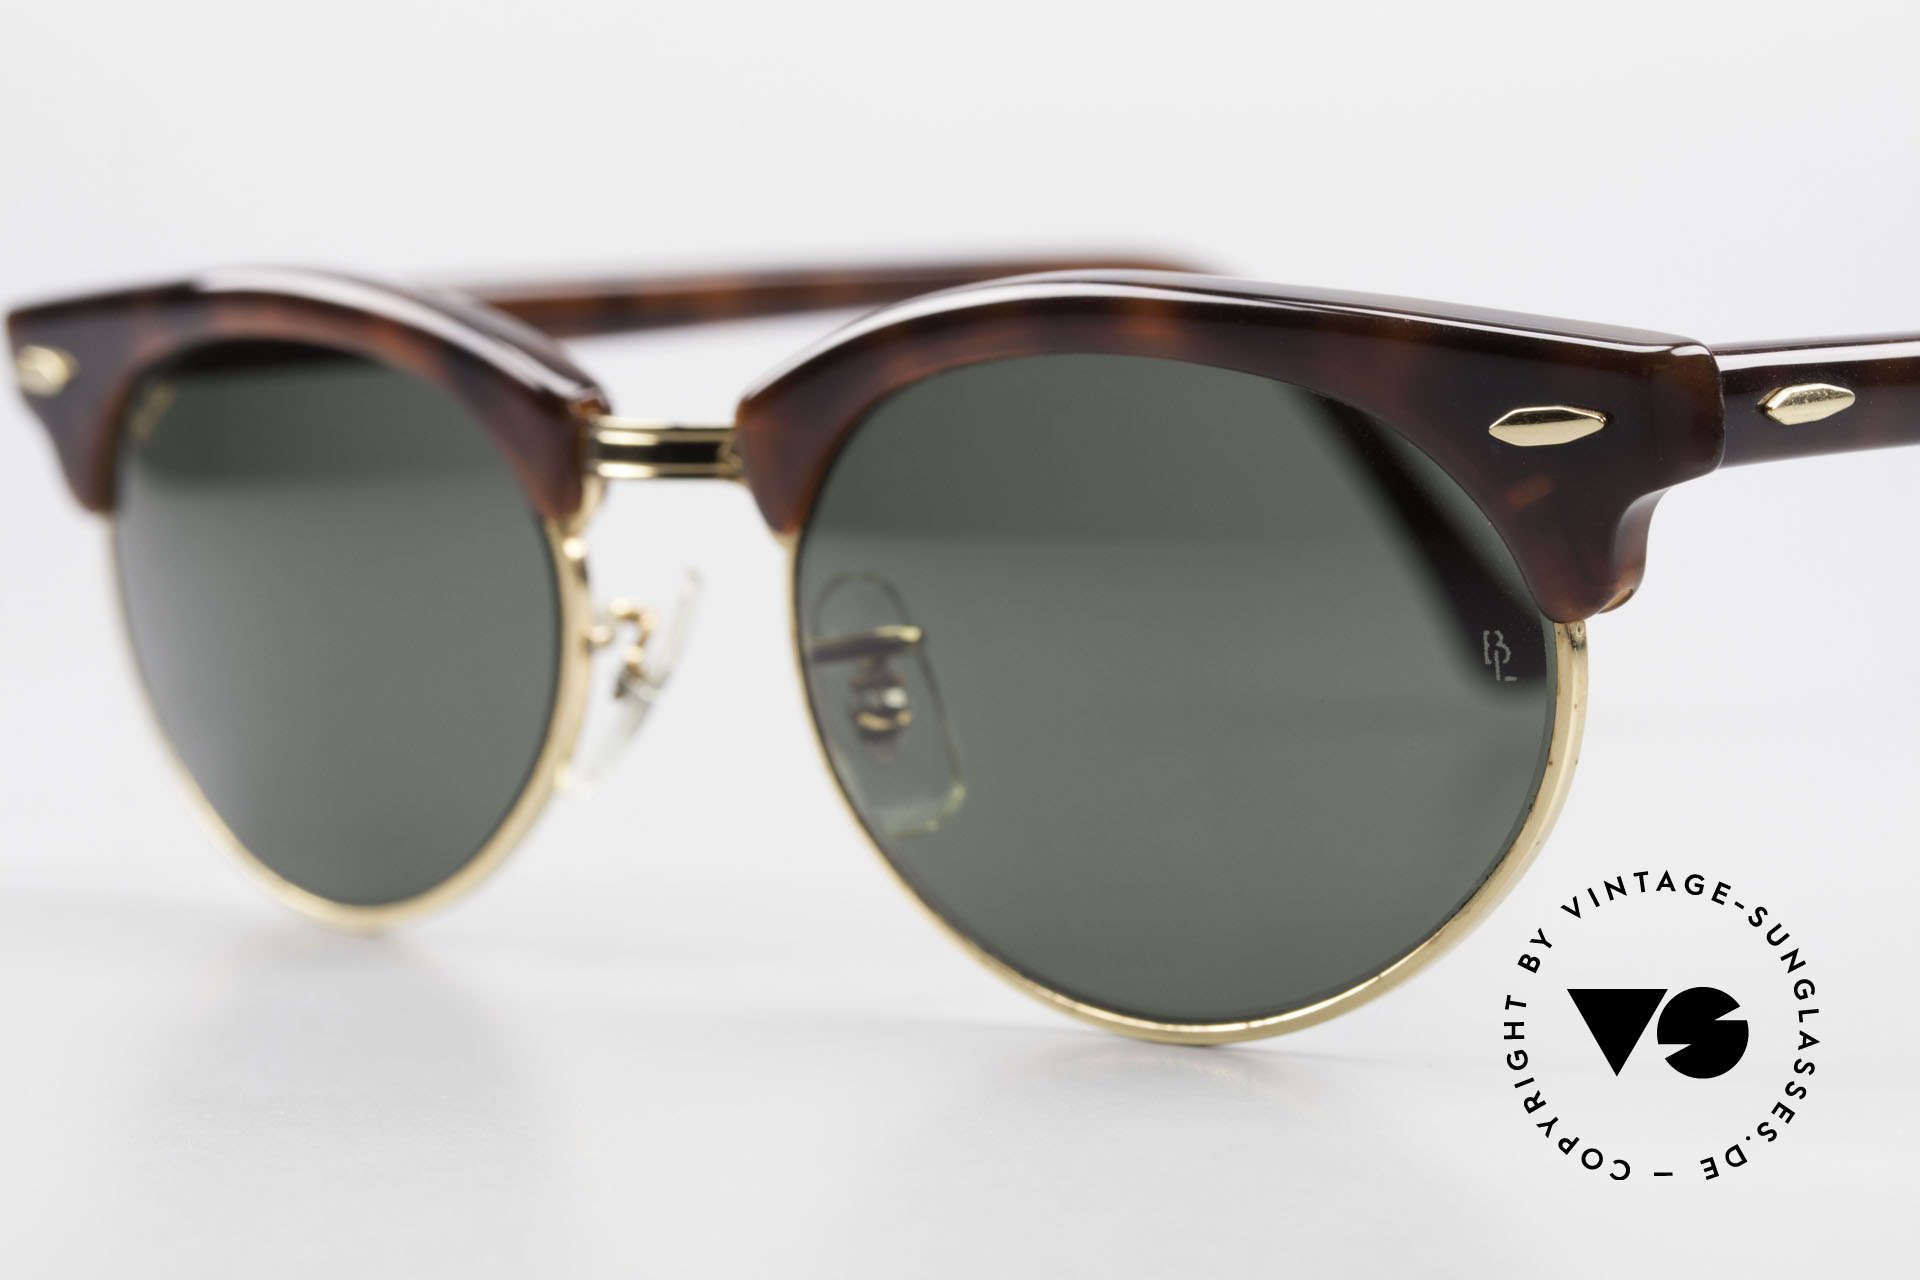 Ray Ban Clubmaster Oval 80's Bausch & Lomb Original, never worn (like all our vintage Ray Ban eyewear), Made for Men and Women